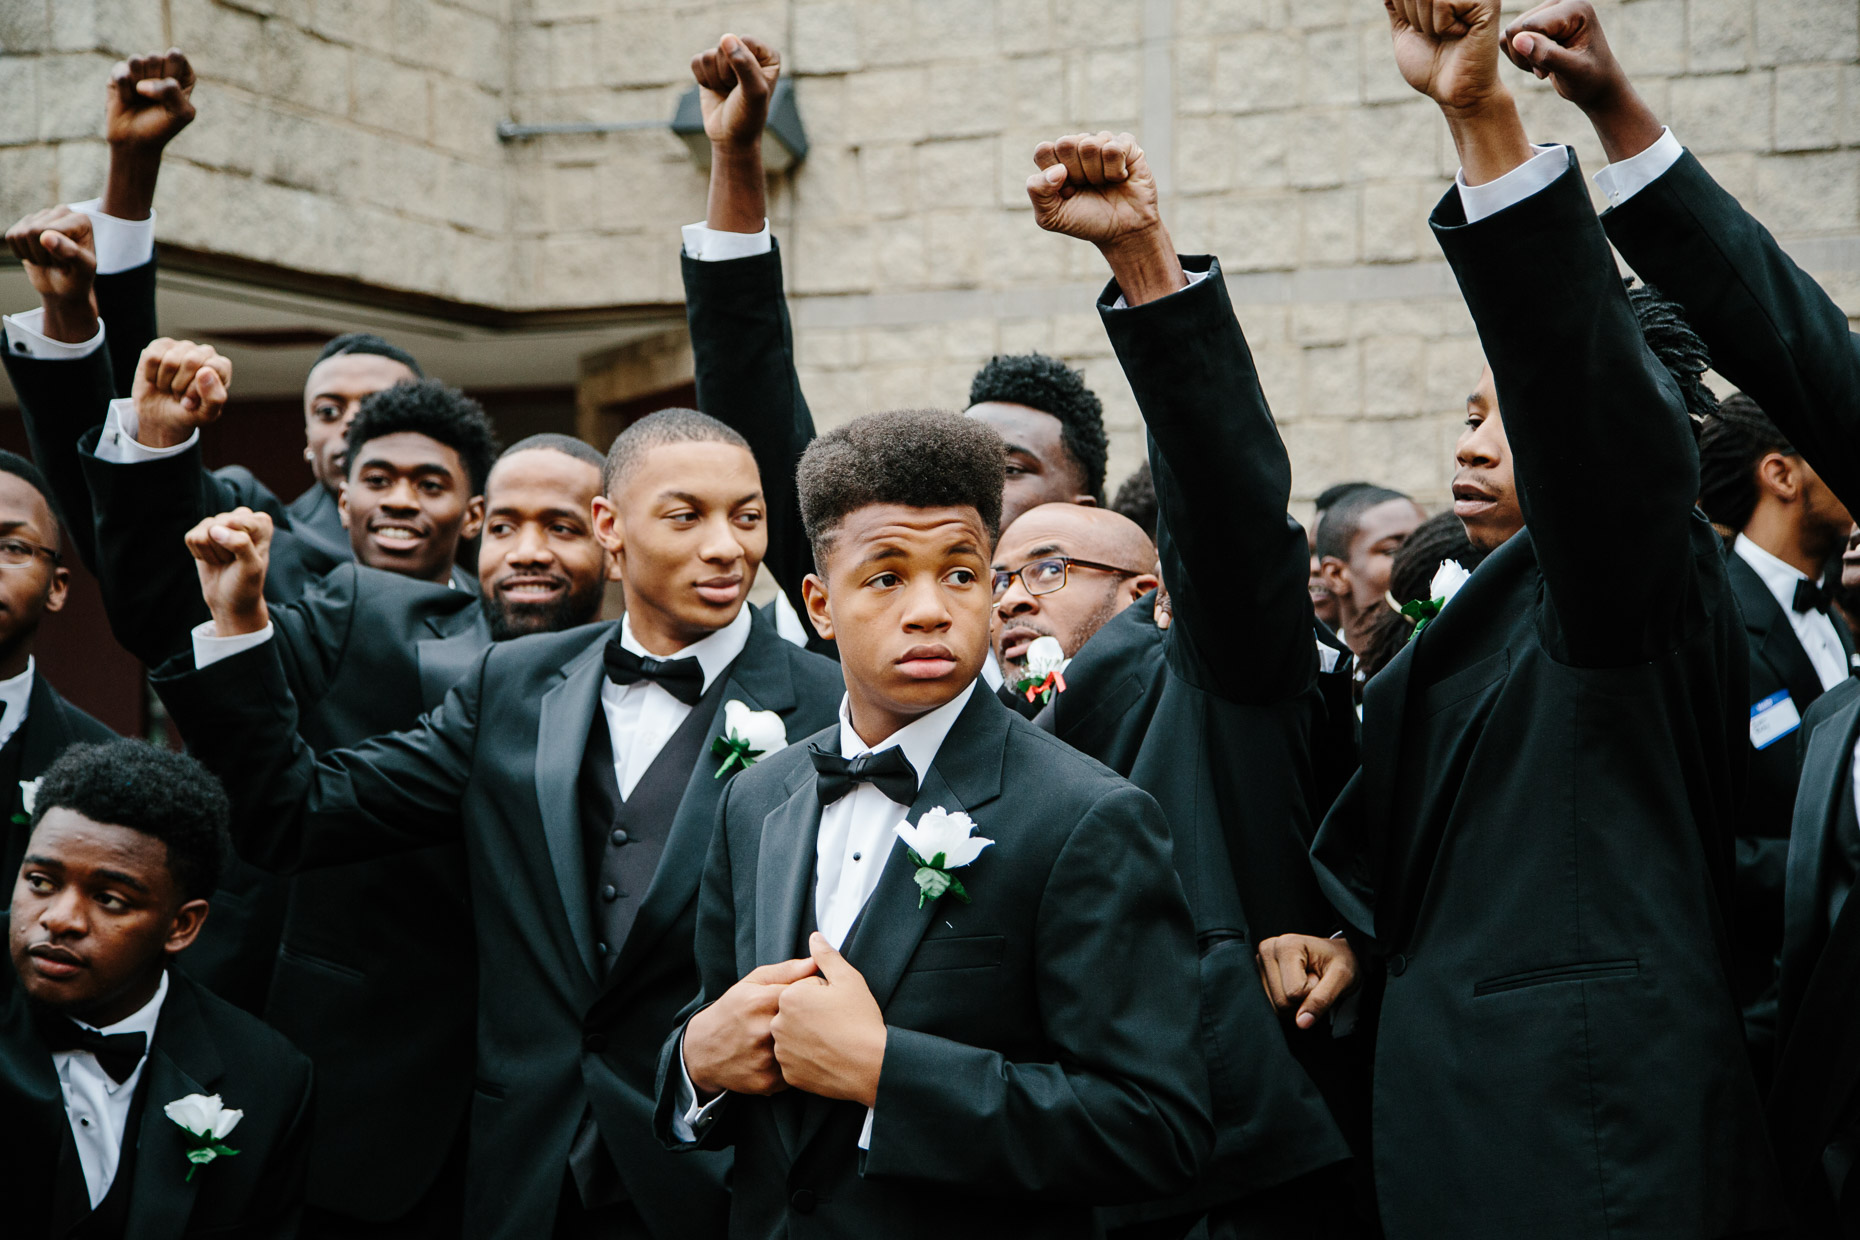 A group of young men pose for a group photo outside the Northcott Neighborhood House during the 500 Black Tuxedos Event, organized by Andre Lee Ellis on Saturday December 12th, 2015 in Milwaukee, Wisconsin.